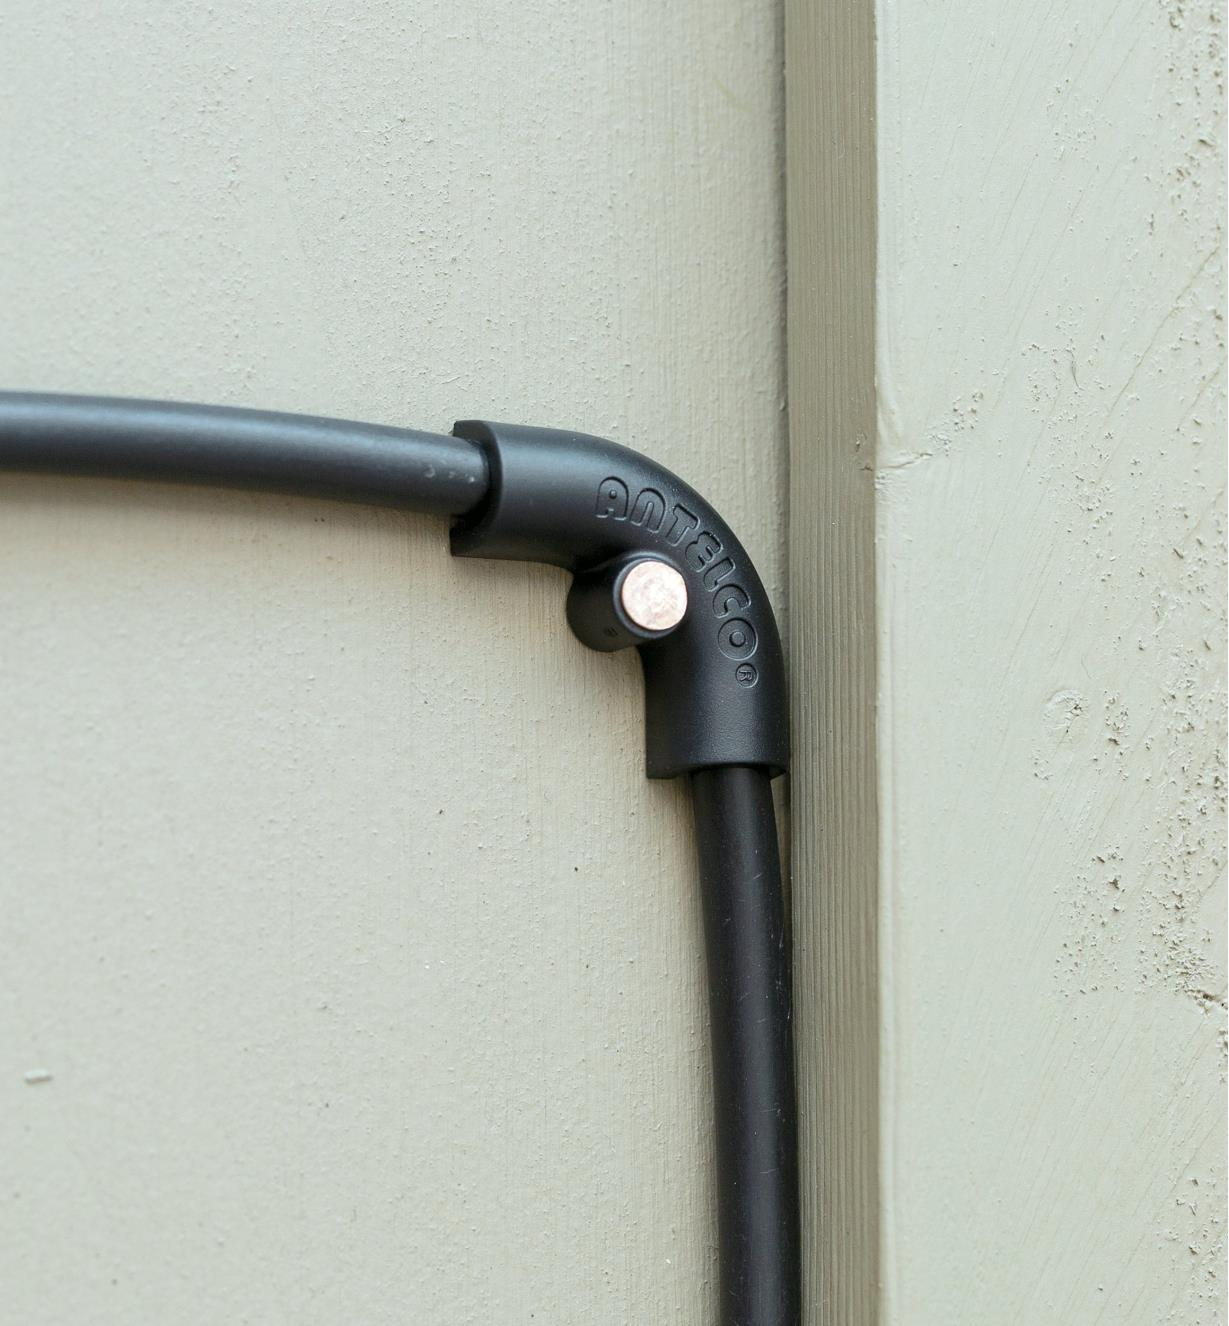 Clip-on elbow fitted onto irrigation hose and mounted on a fence